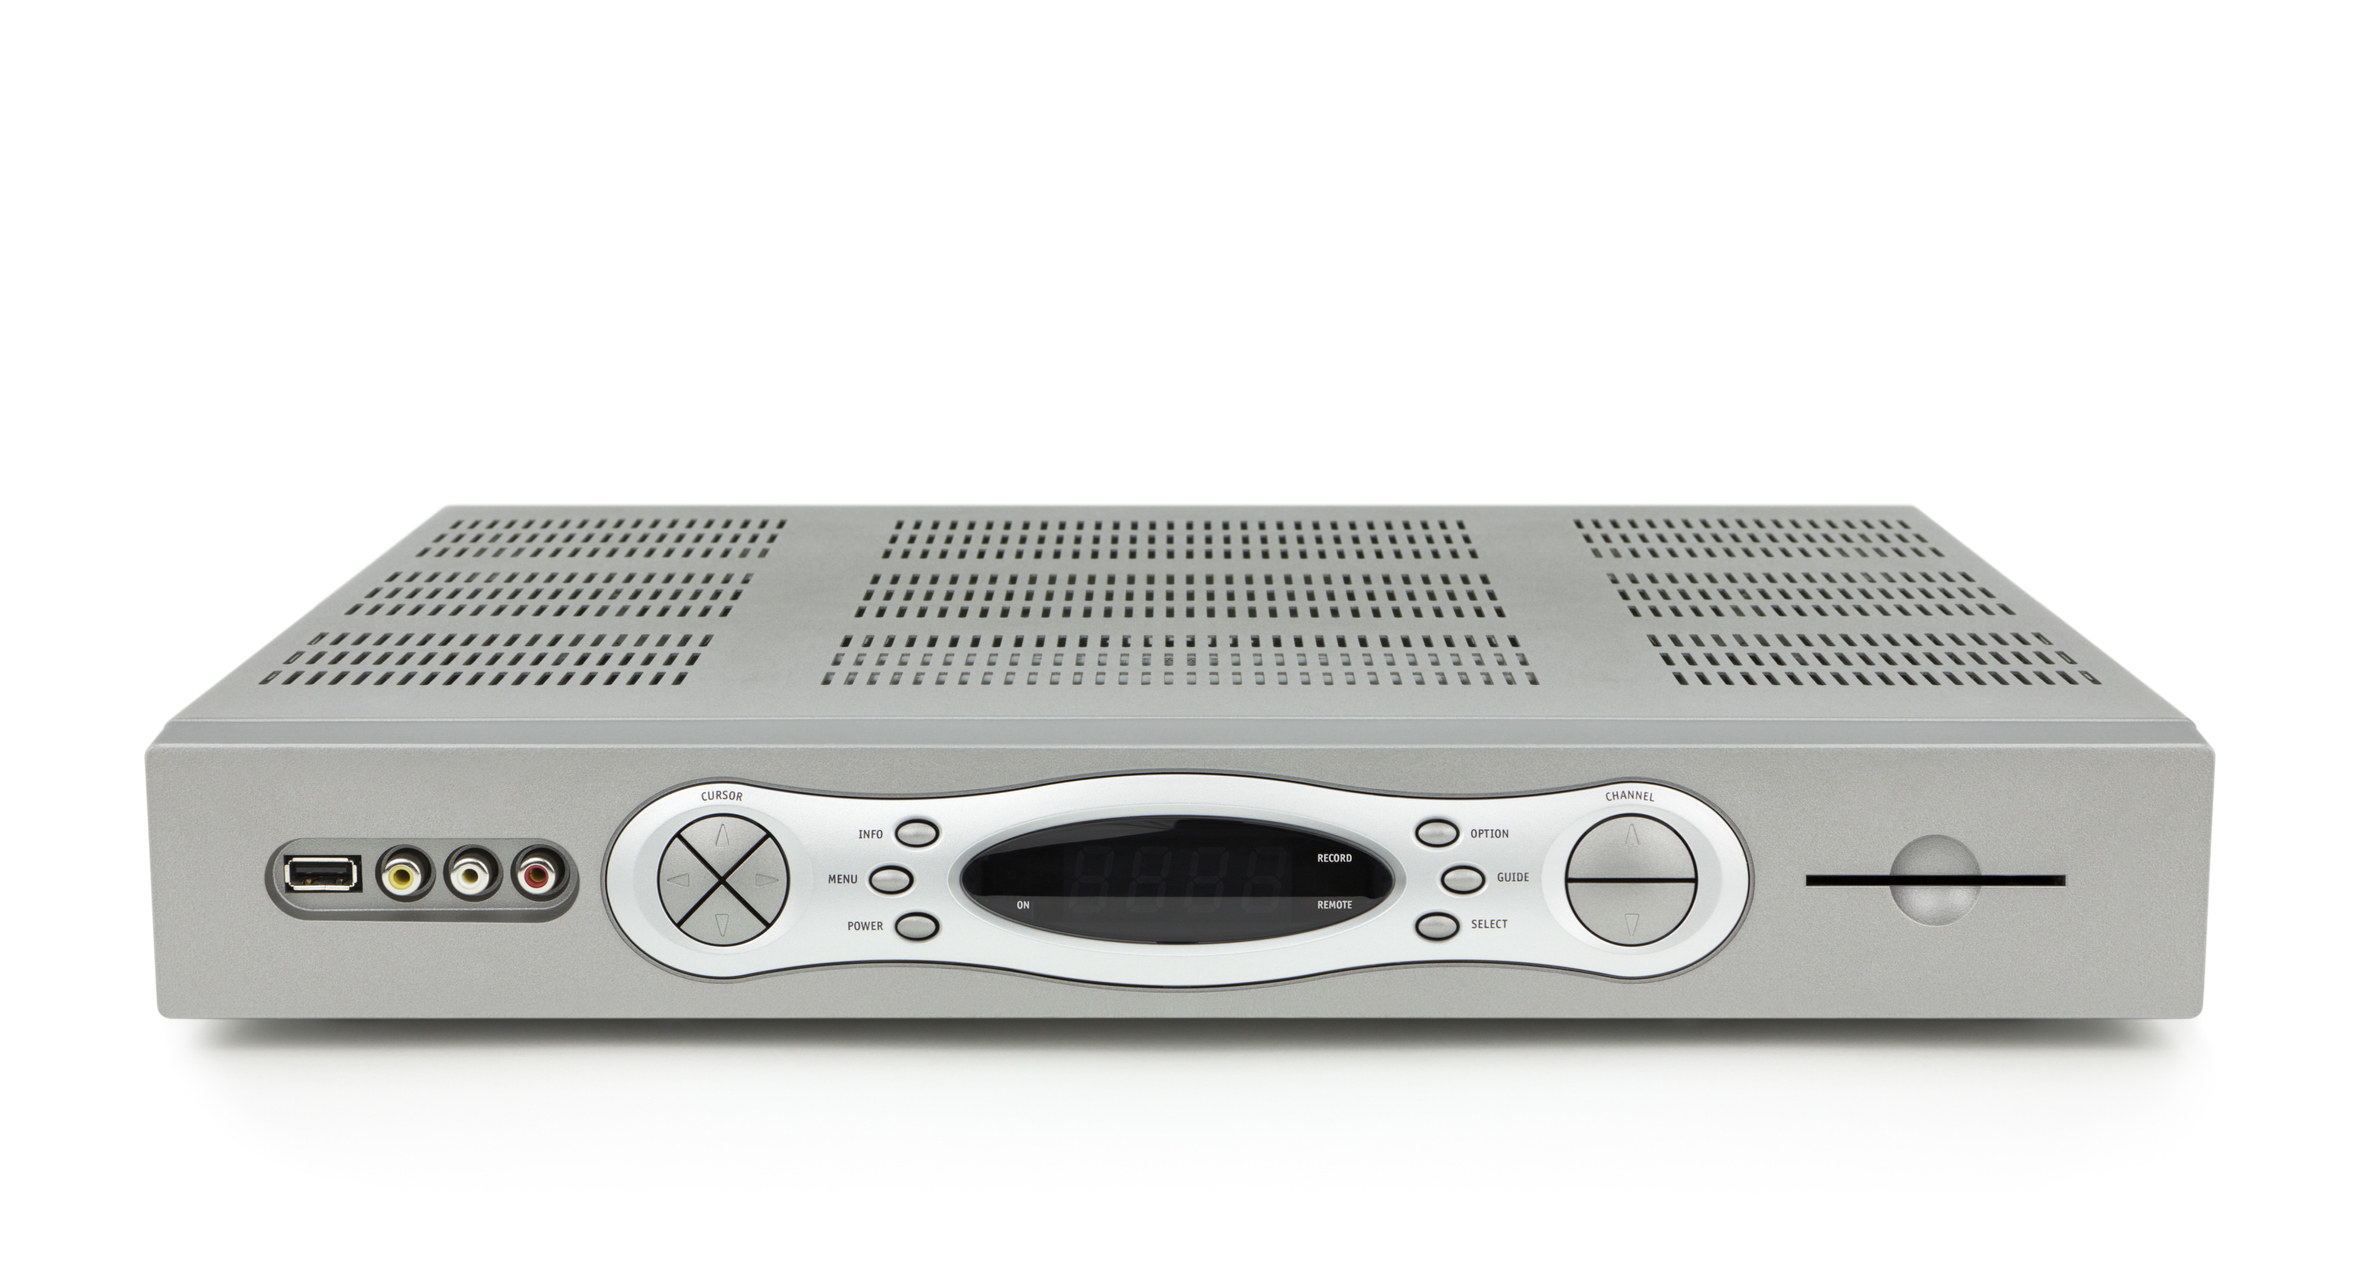 High-definition digital video recorder, DVR, cable TV box, isolated on white